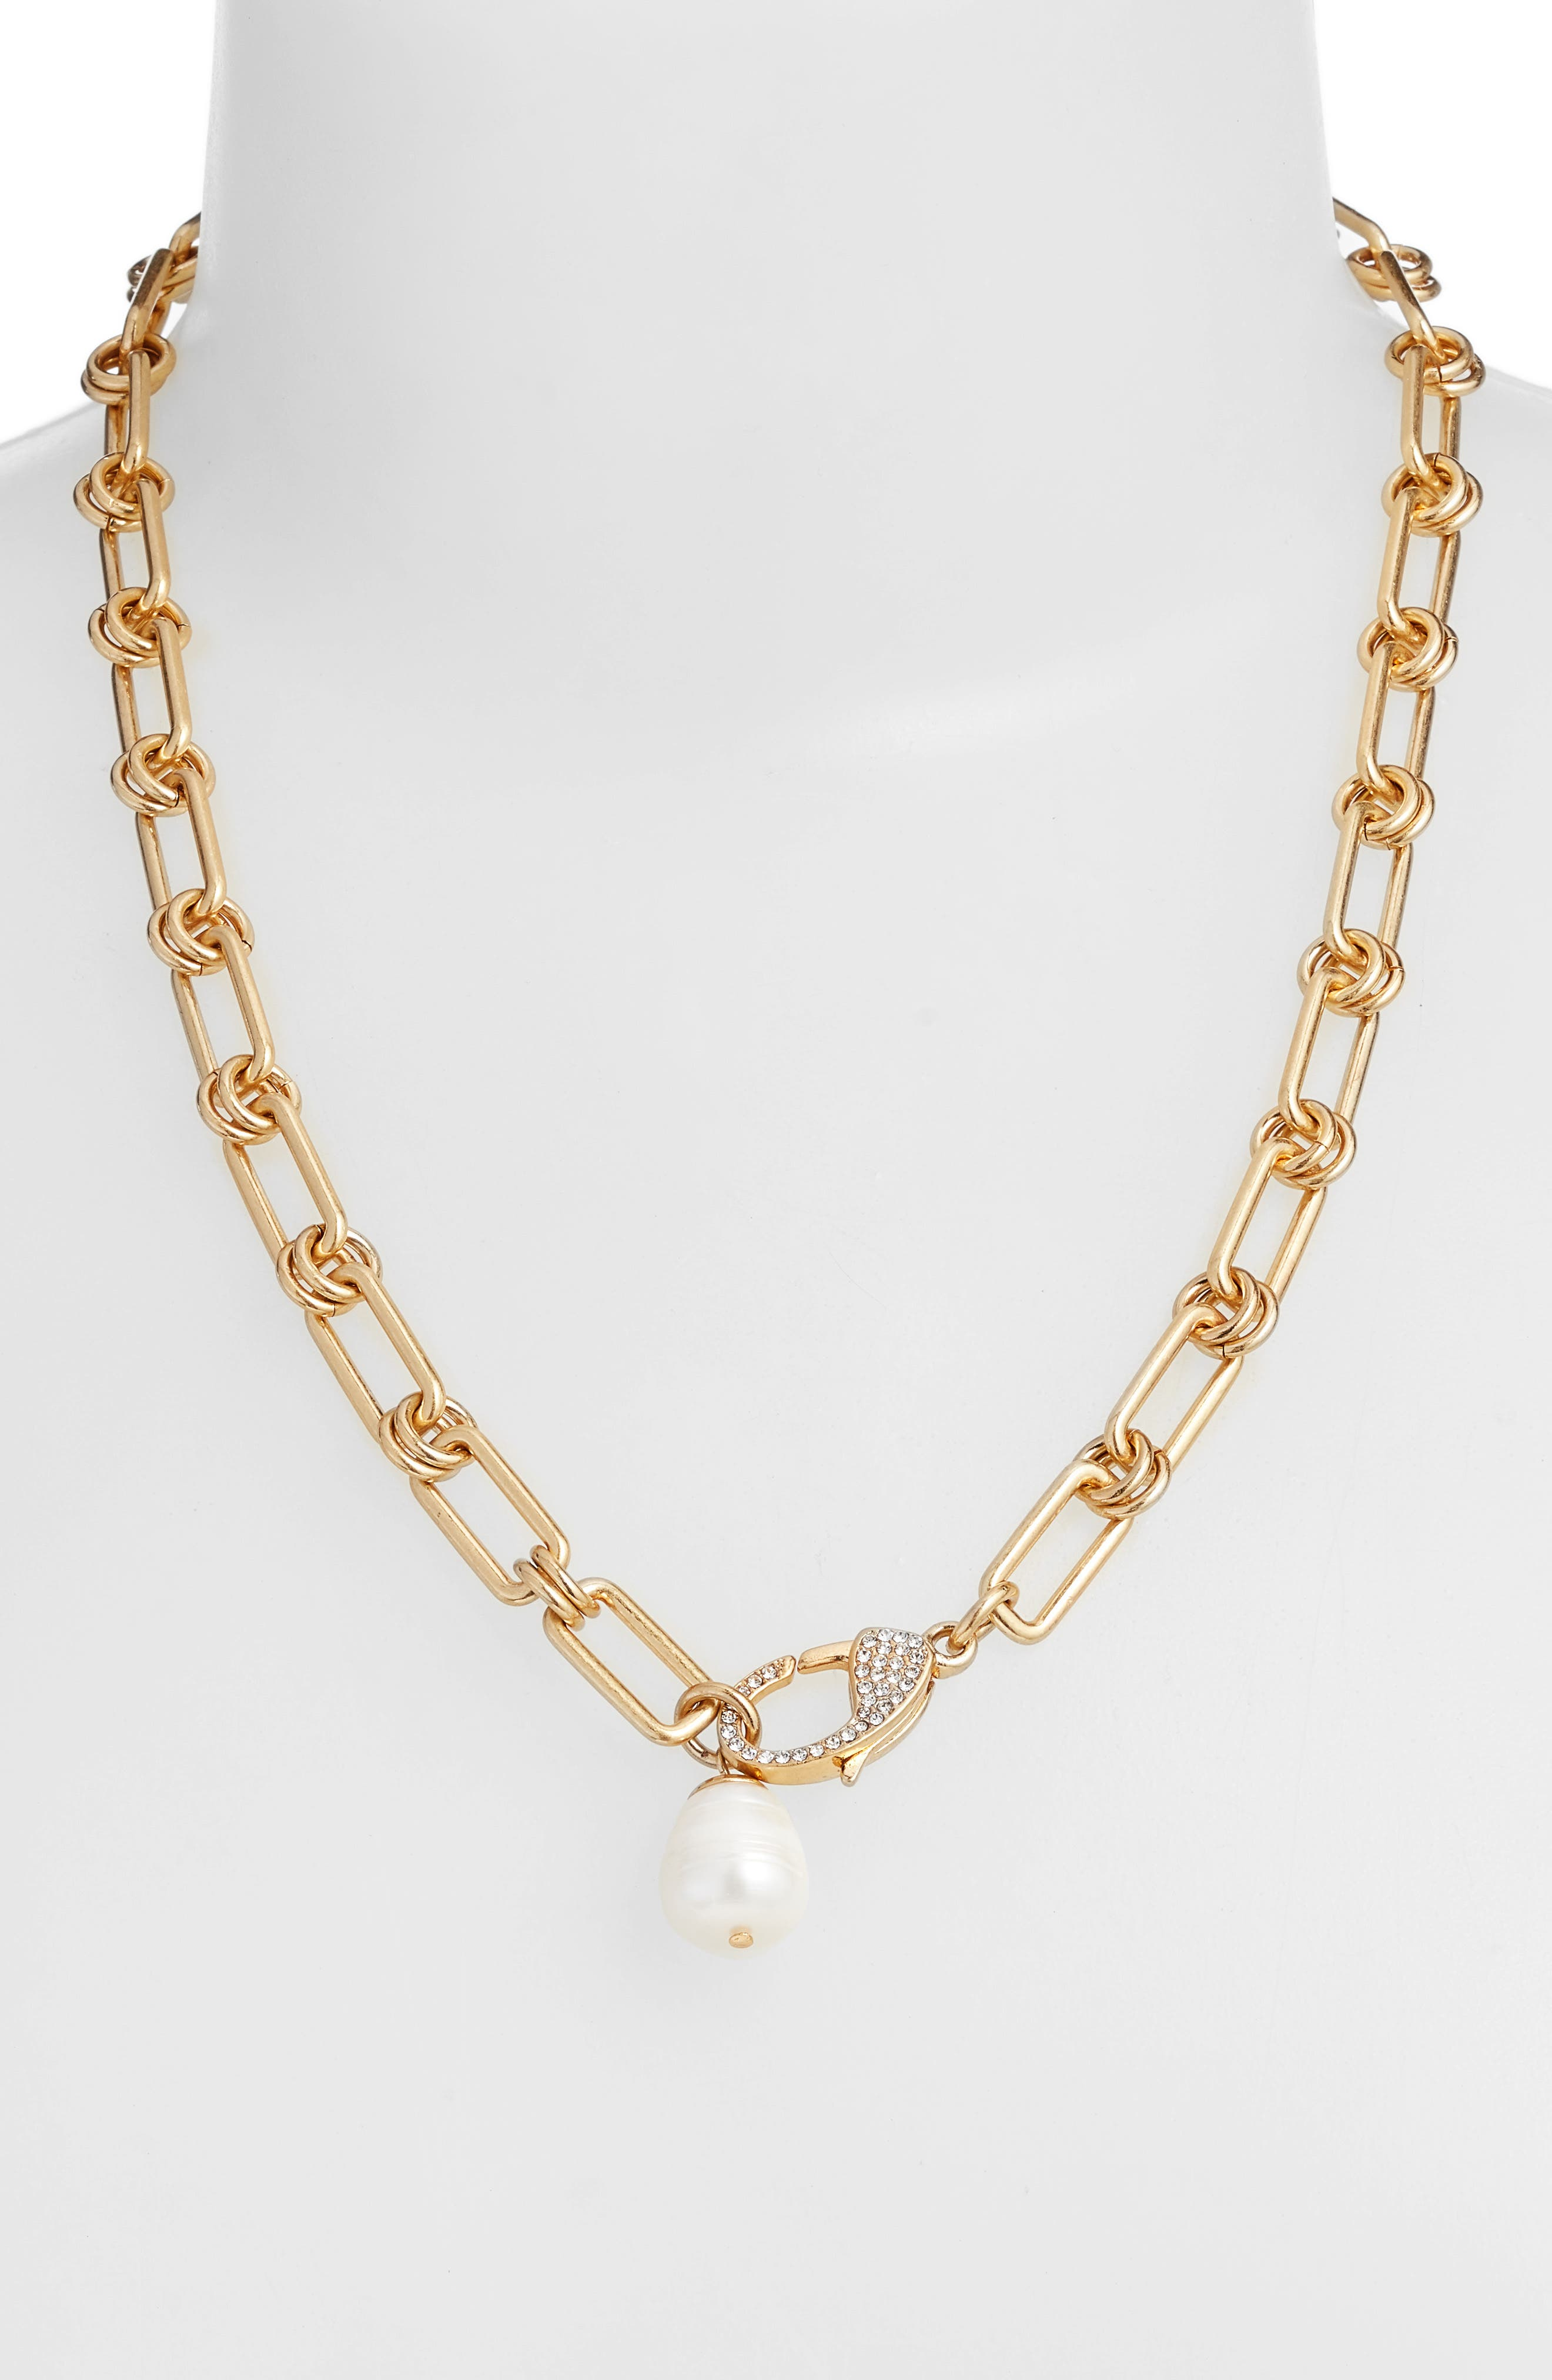 SOLE SOCIETY, Pavé Clasp Freshwater Pearl Pendant Necklace, Alternate thumbnail 2, color, WORN GOLD/CRYS/IVORY PEARL